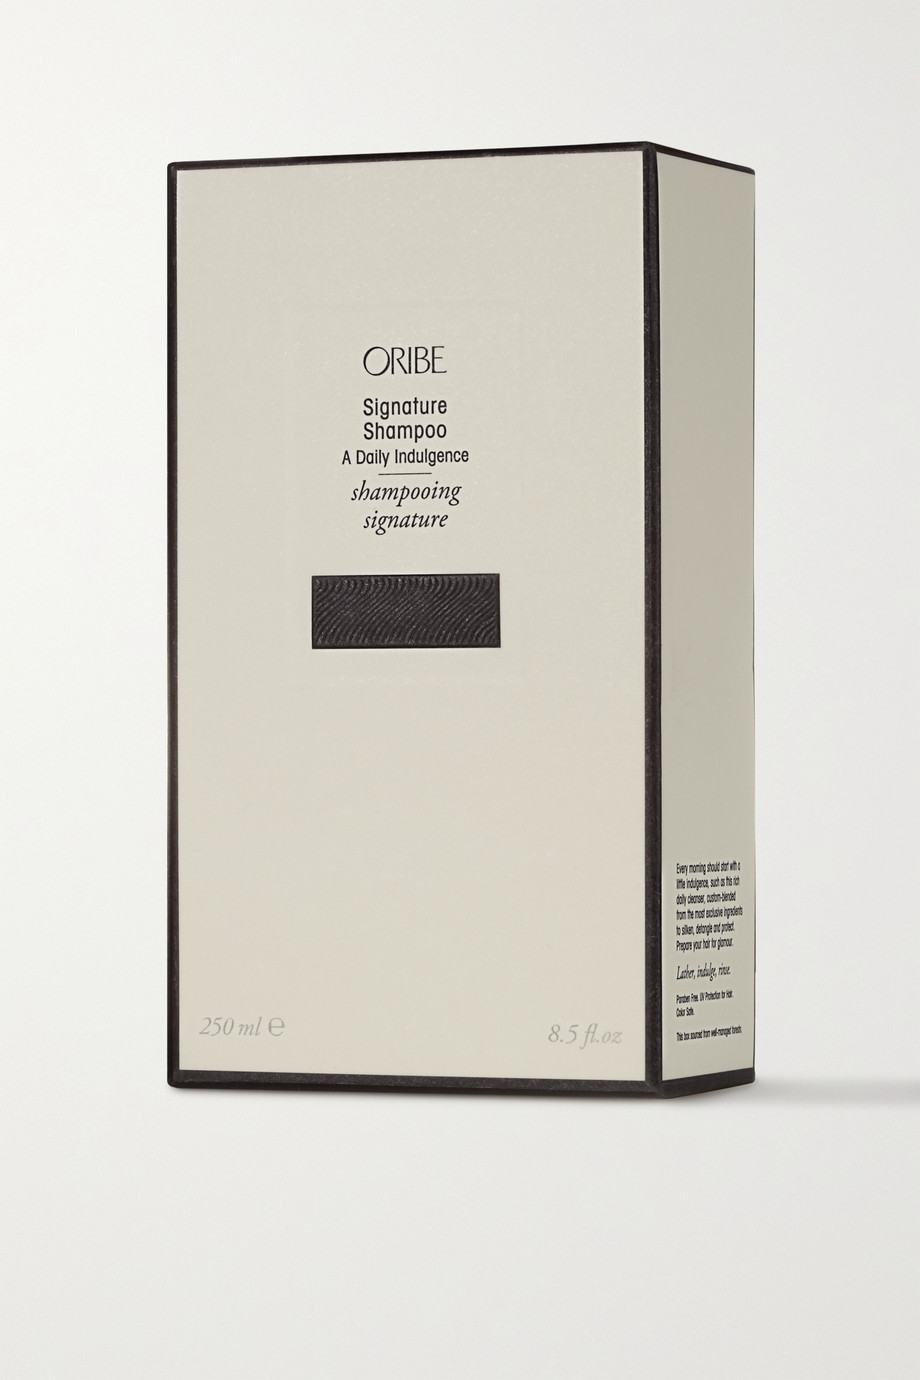 ORIBE Signature Shampoo, 250ml